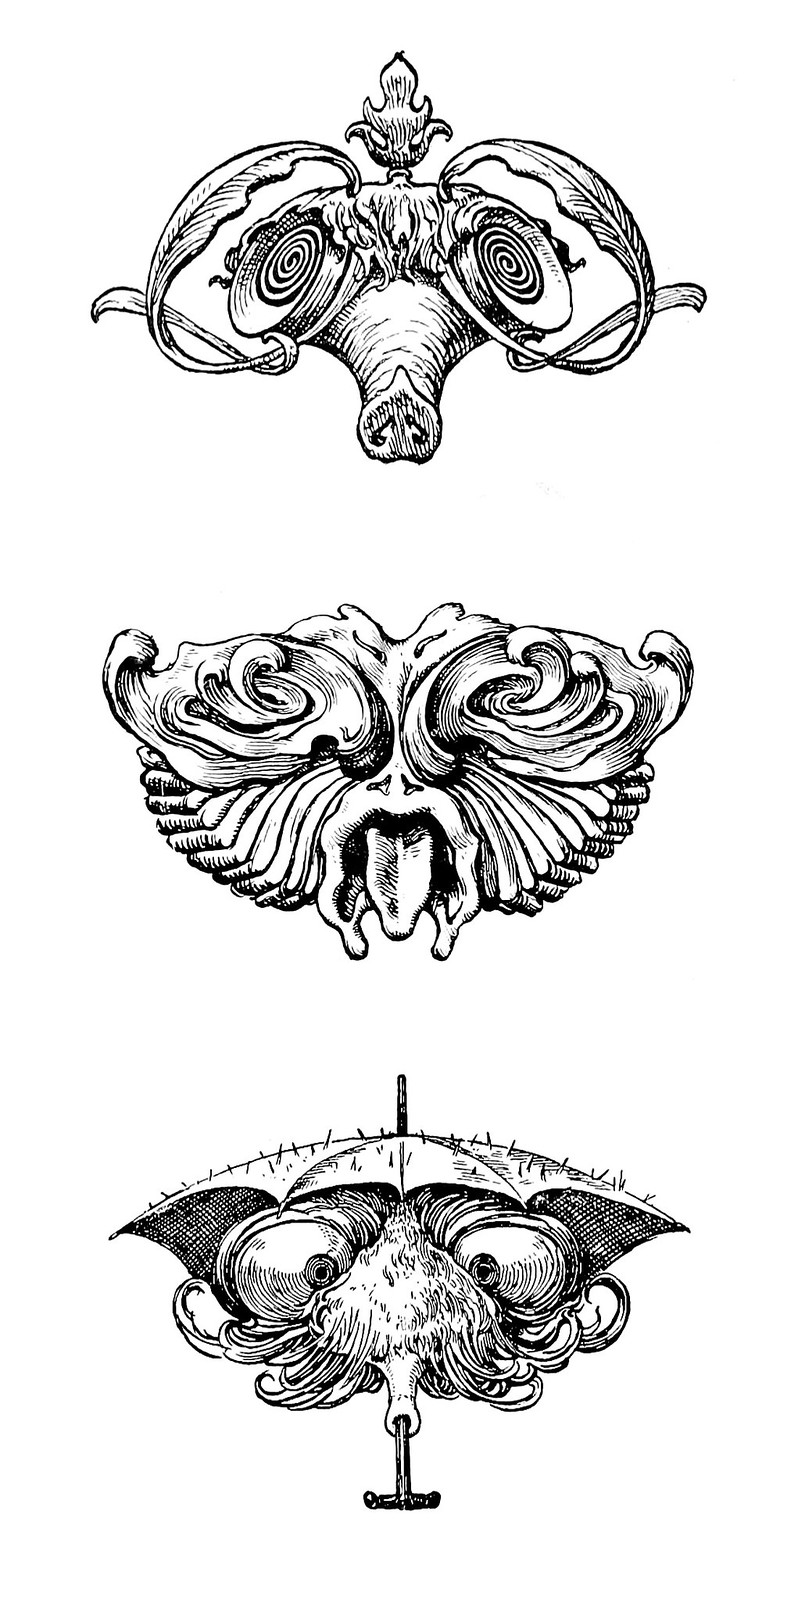 """Hans Tegner - Assortment of grotesque head illustrations (2) from """"Fairy tales and stories"""" by Hans Christian Andersen, 1900"""